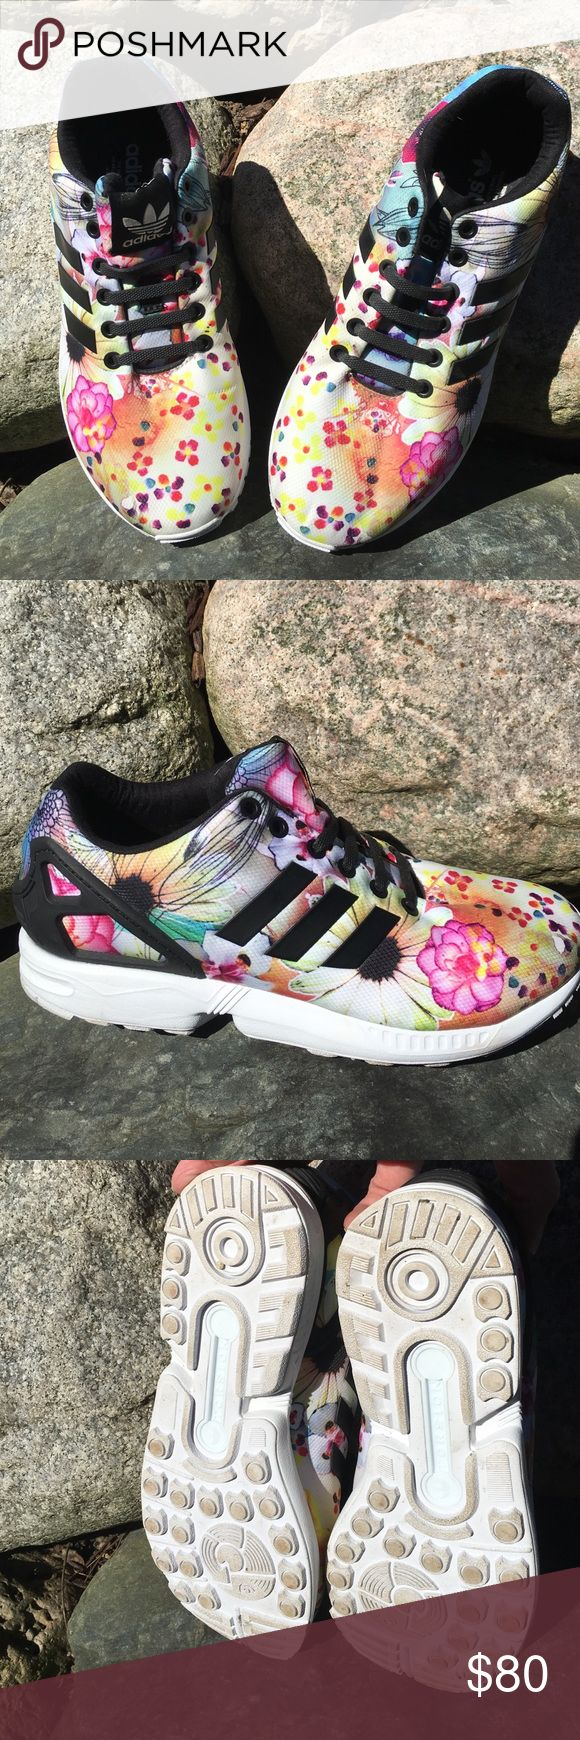 sports shoes 56b14 74c7e adidas zx flux floral womens